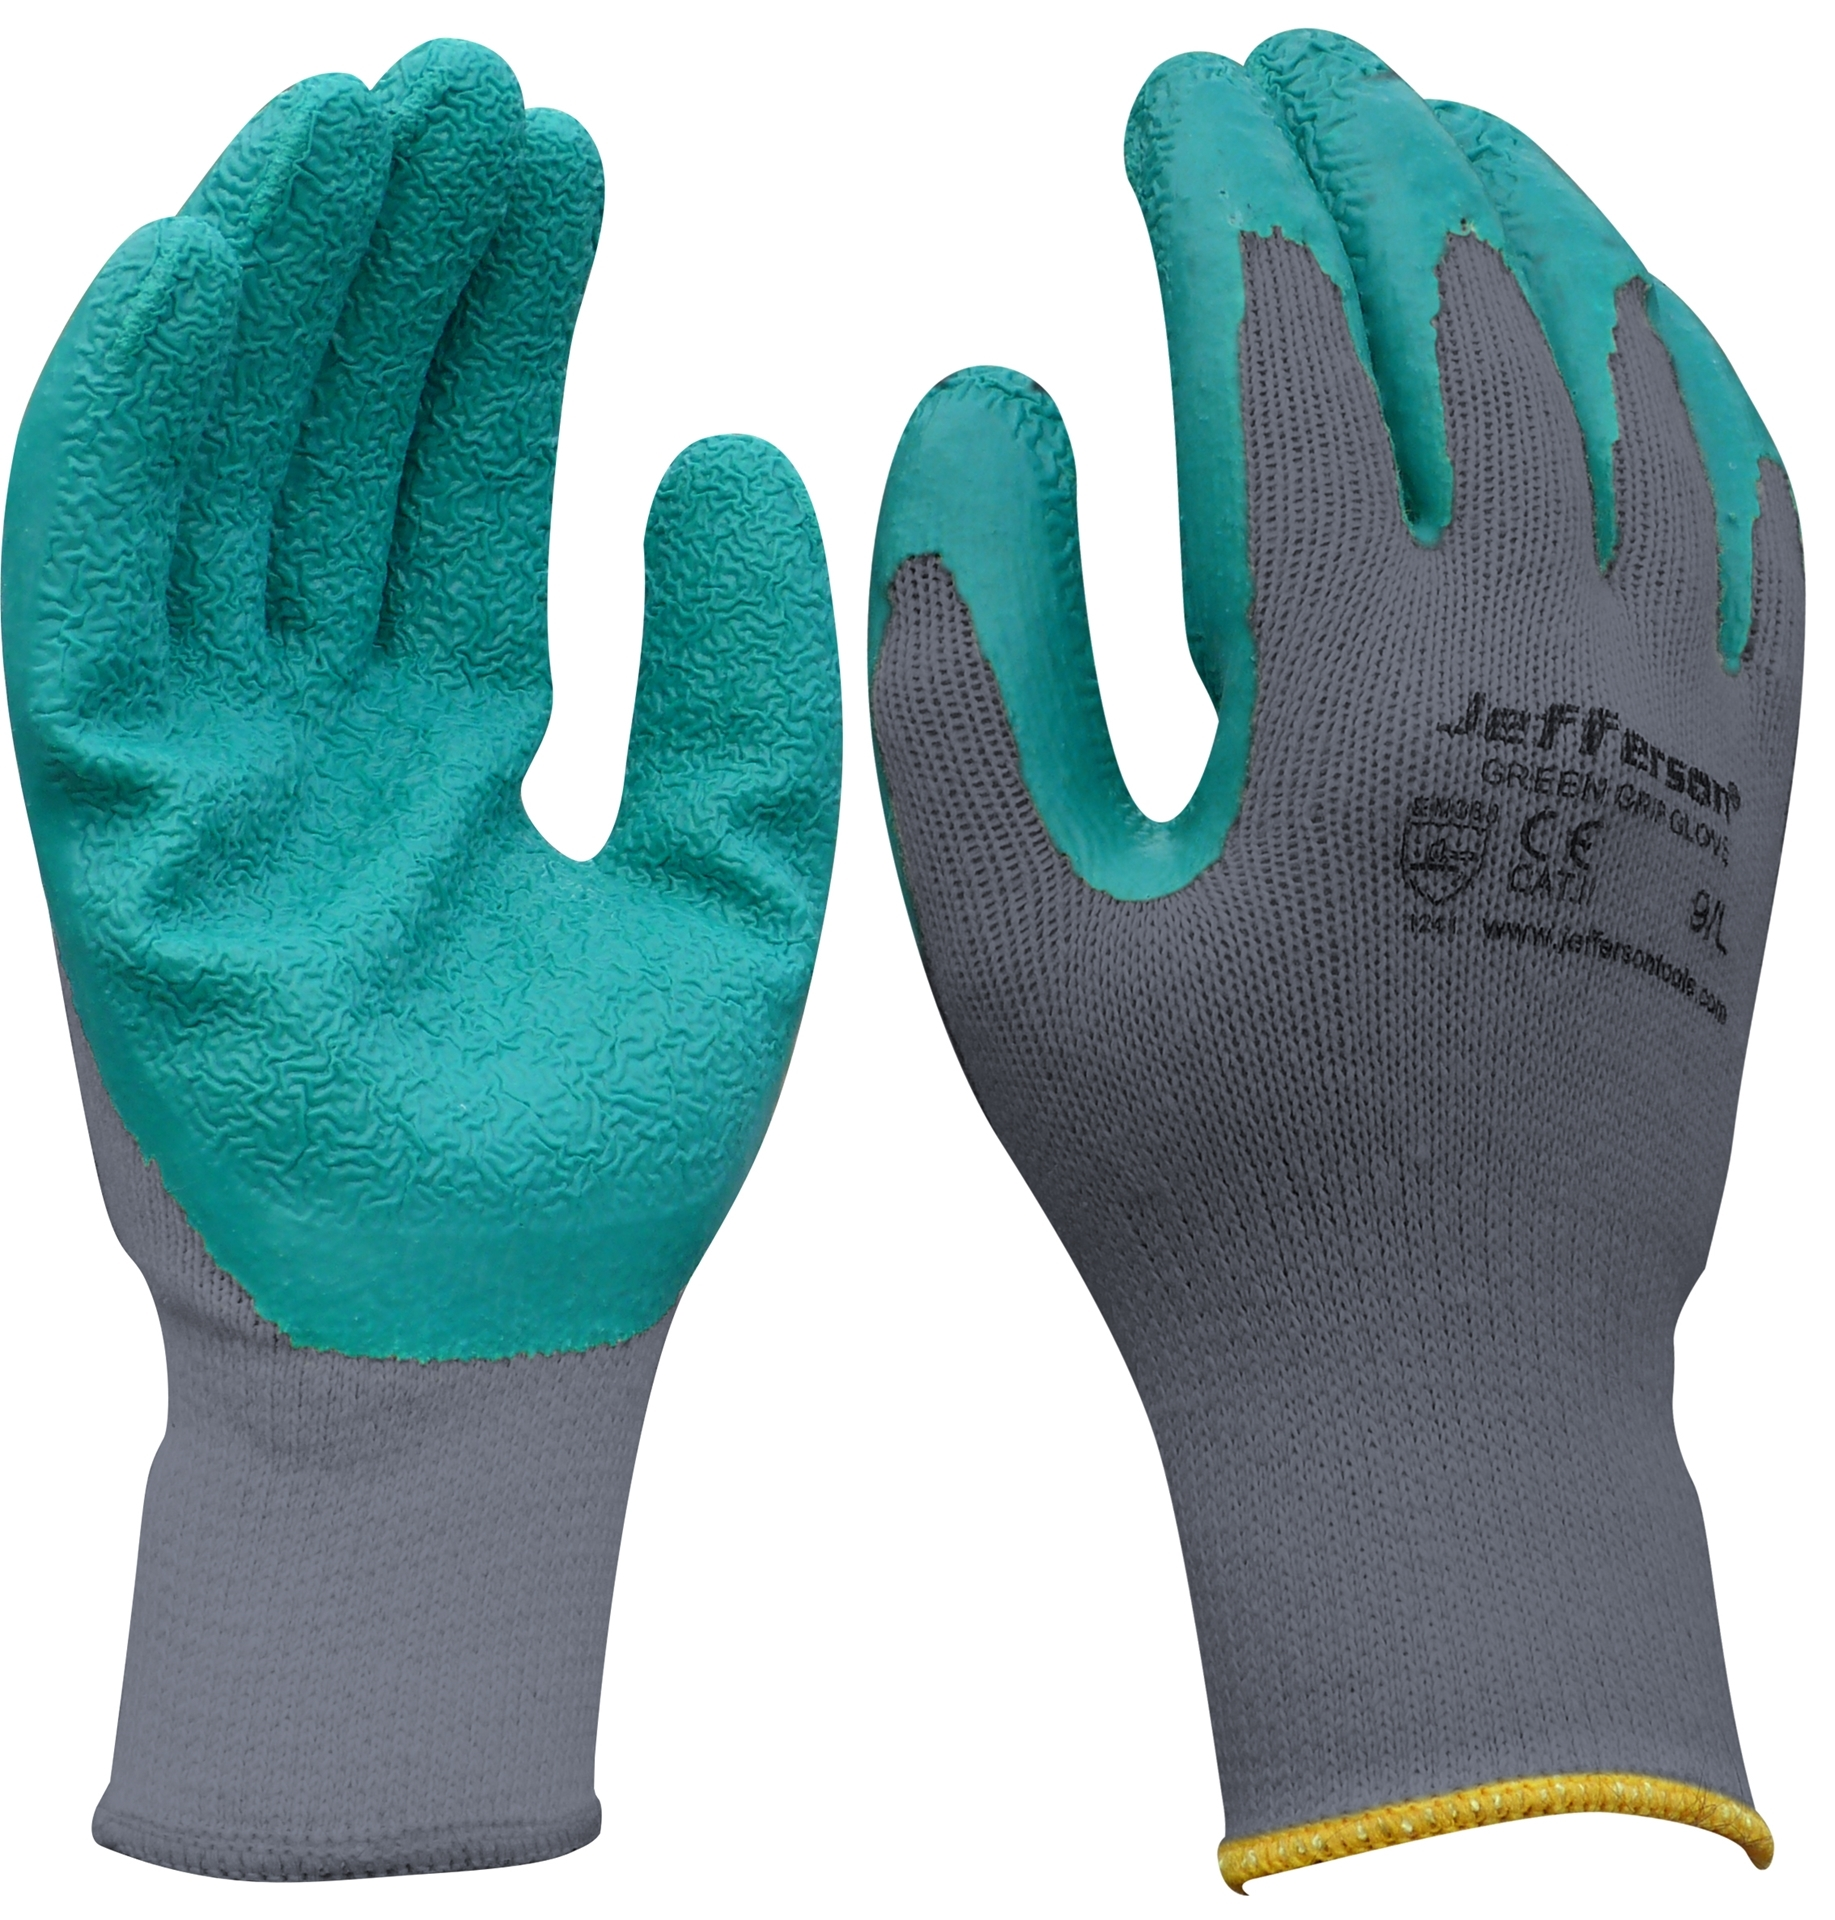 Jefferson - Grey / Green Grip Gloves (12 Pack)